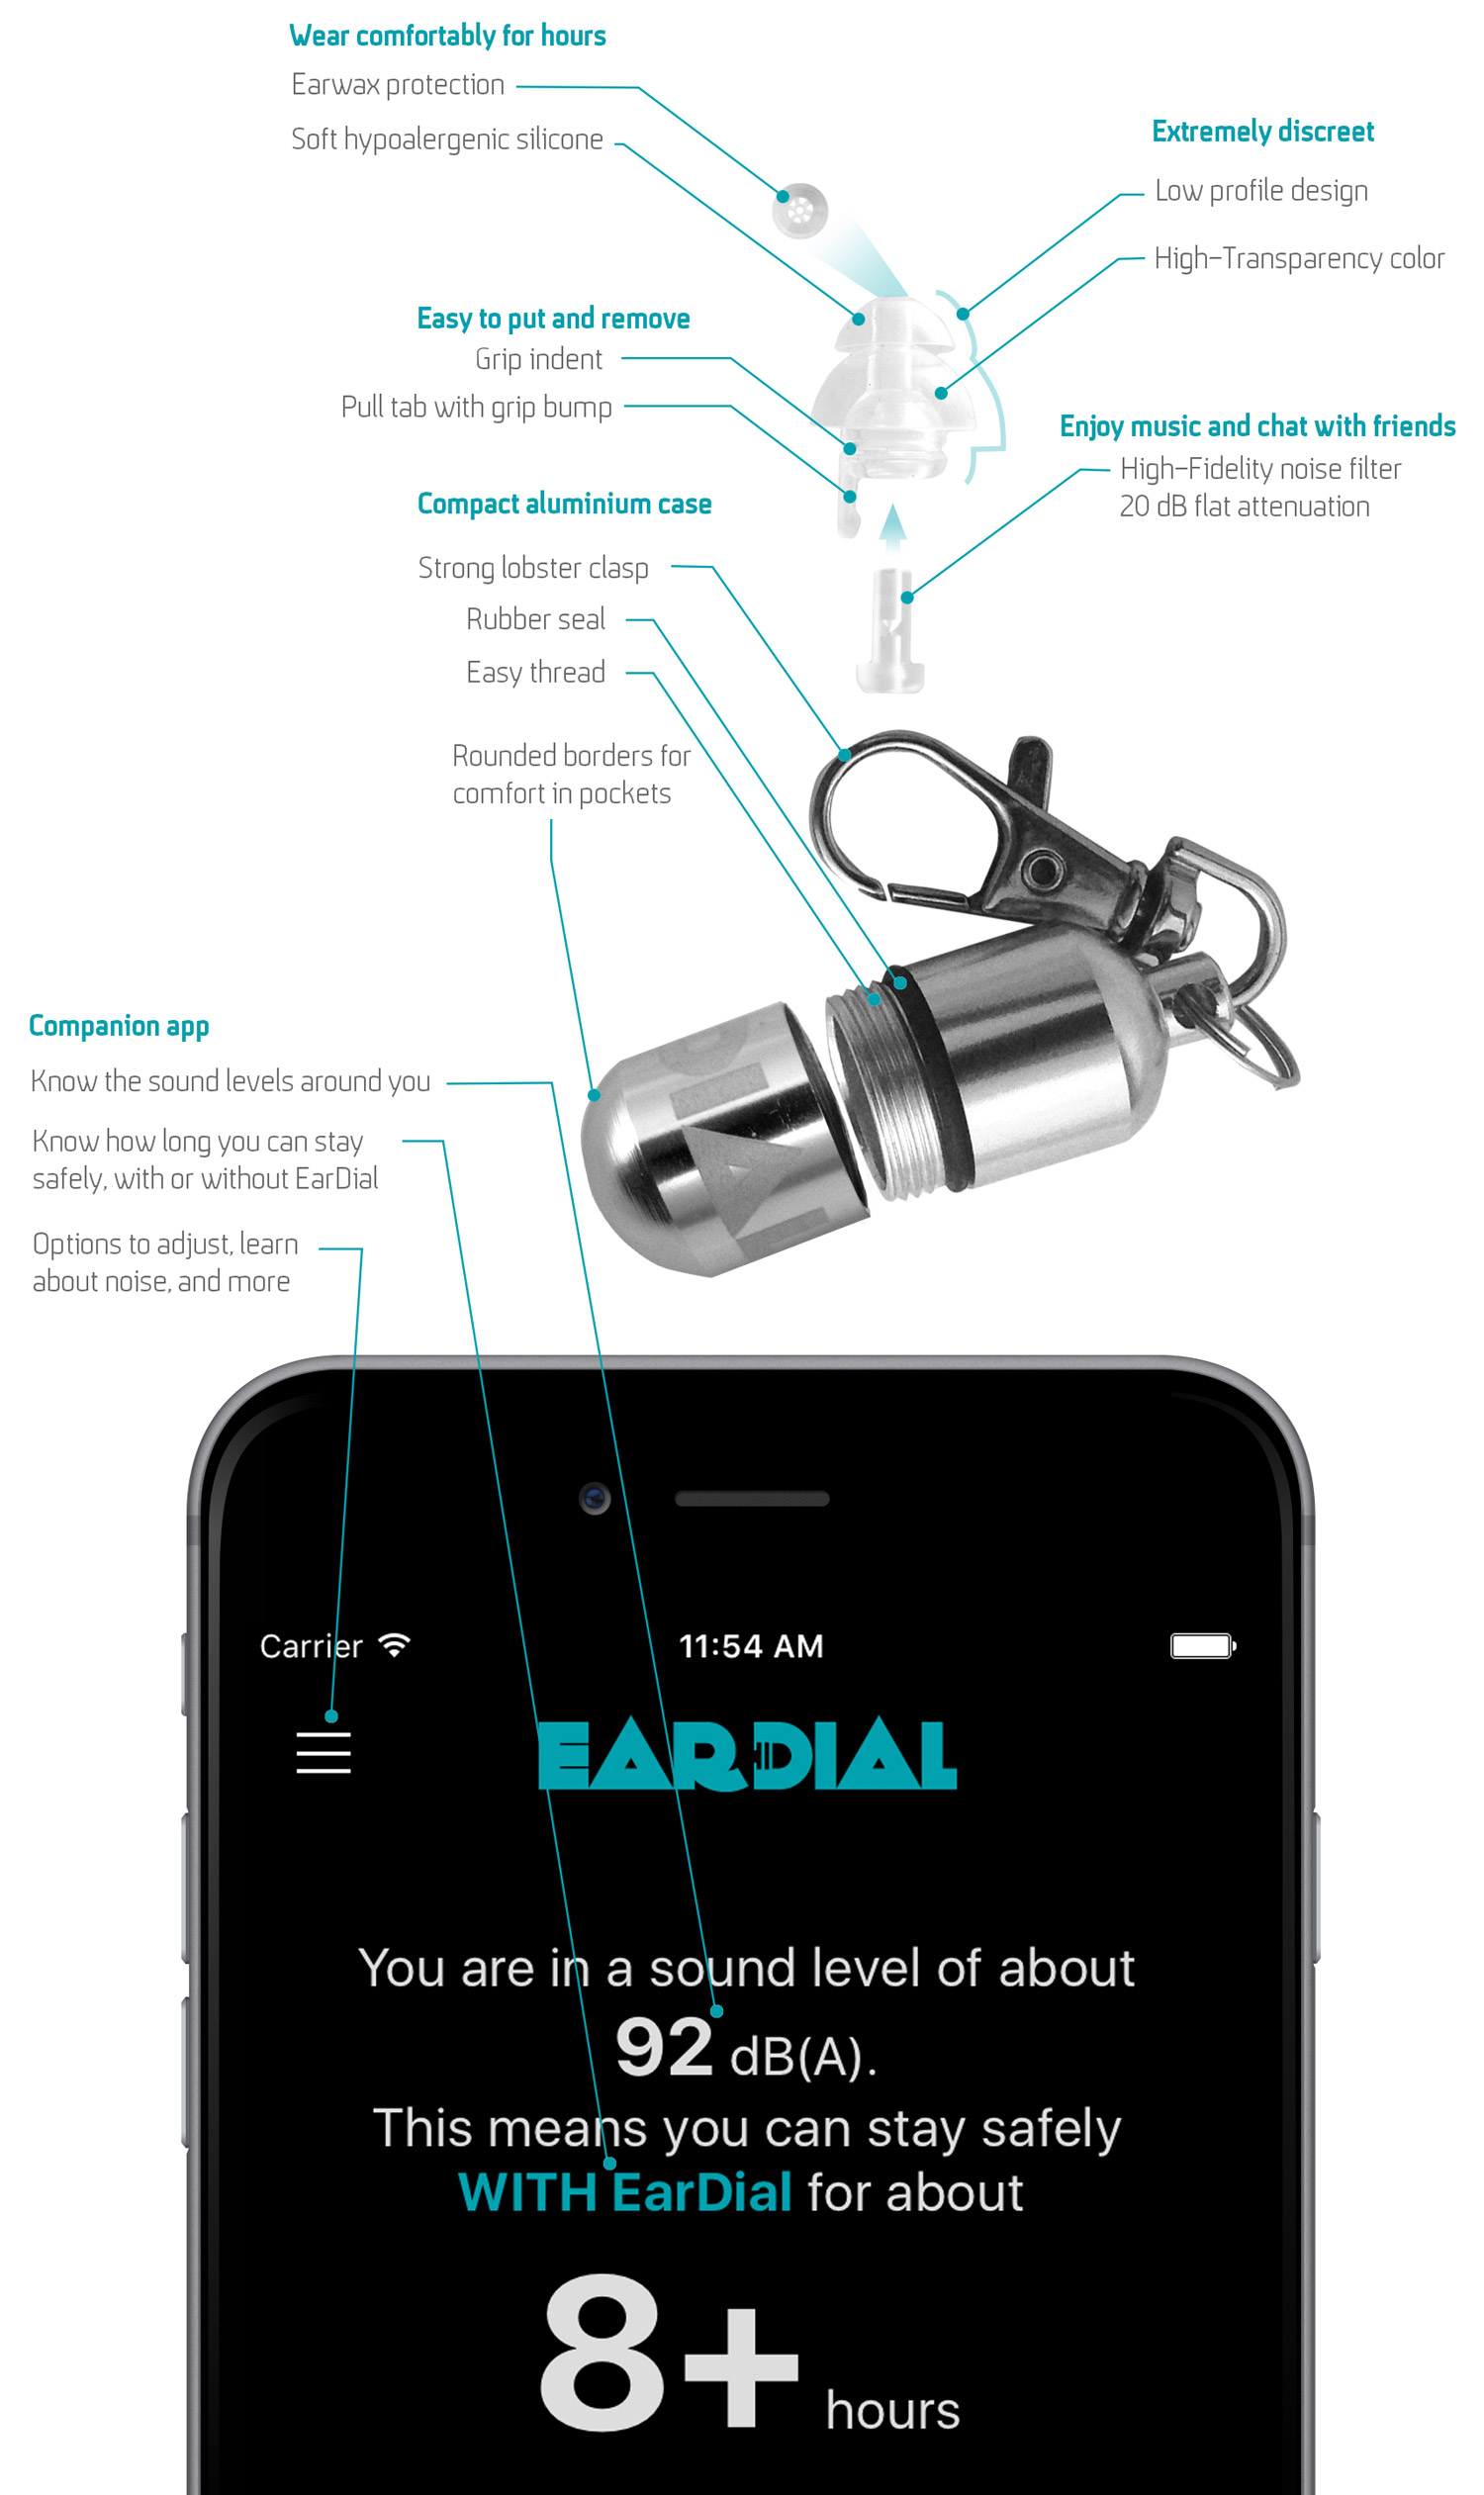 eardial-features